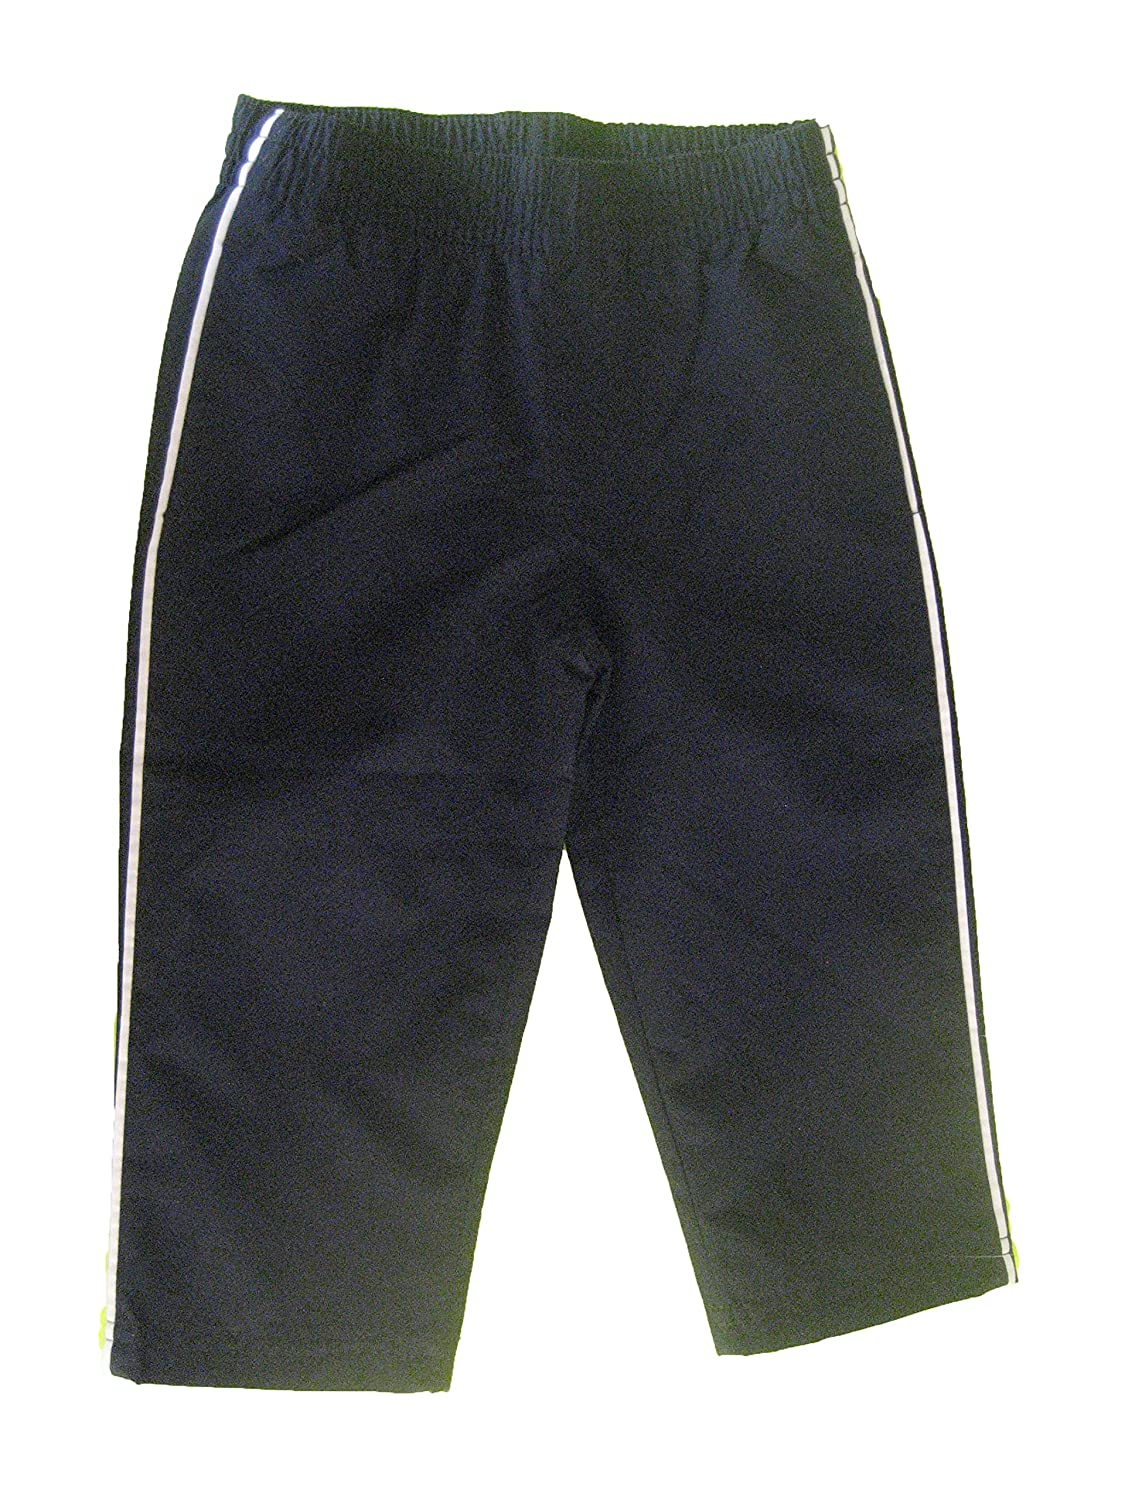 Okie Dokie Bold Navy Blue Jogging Pants